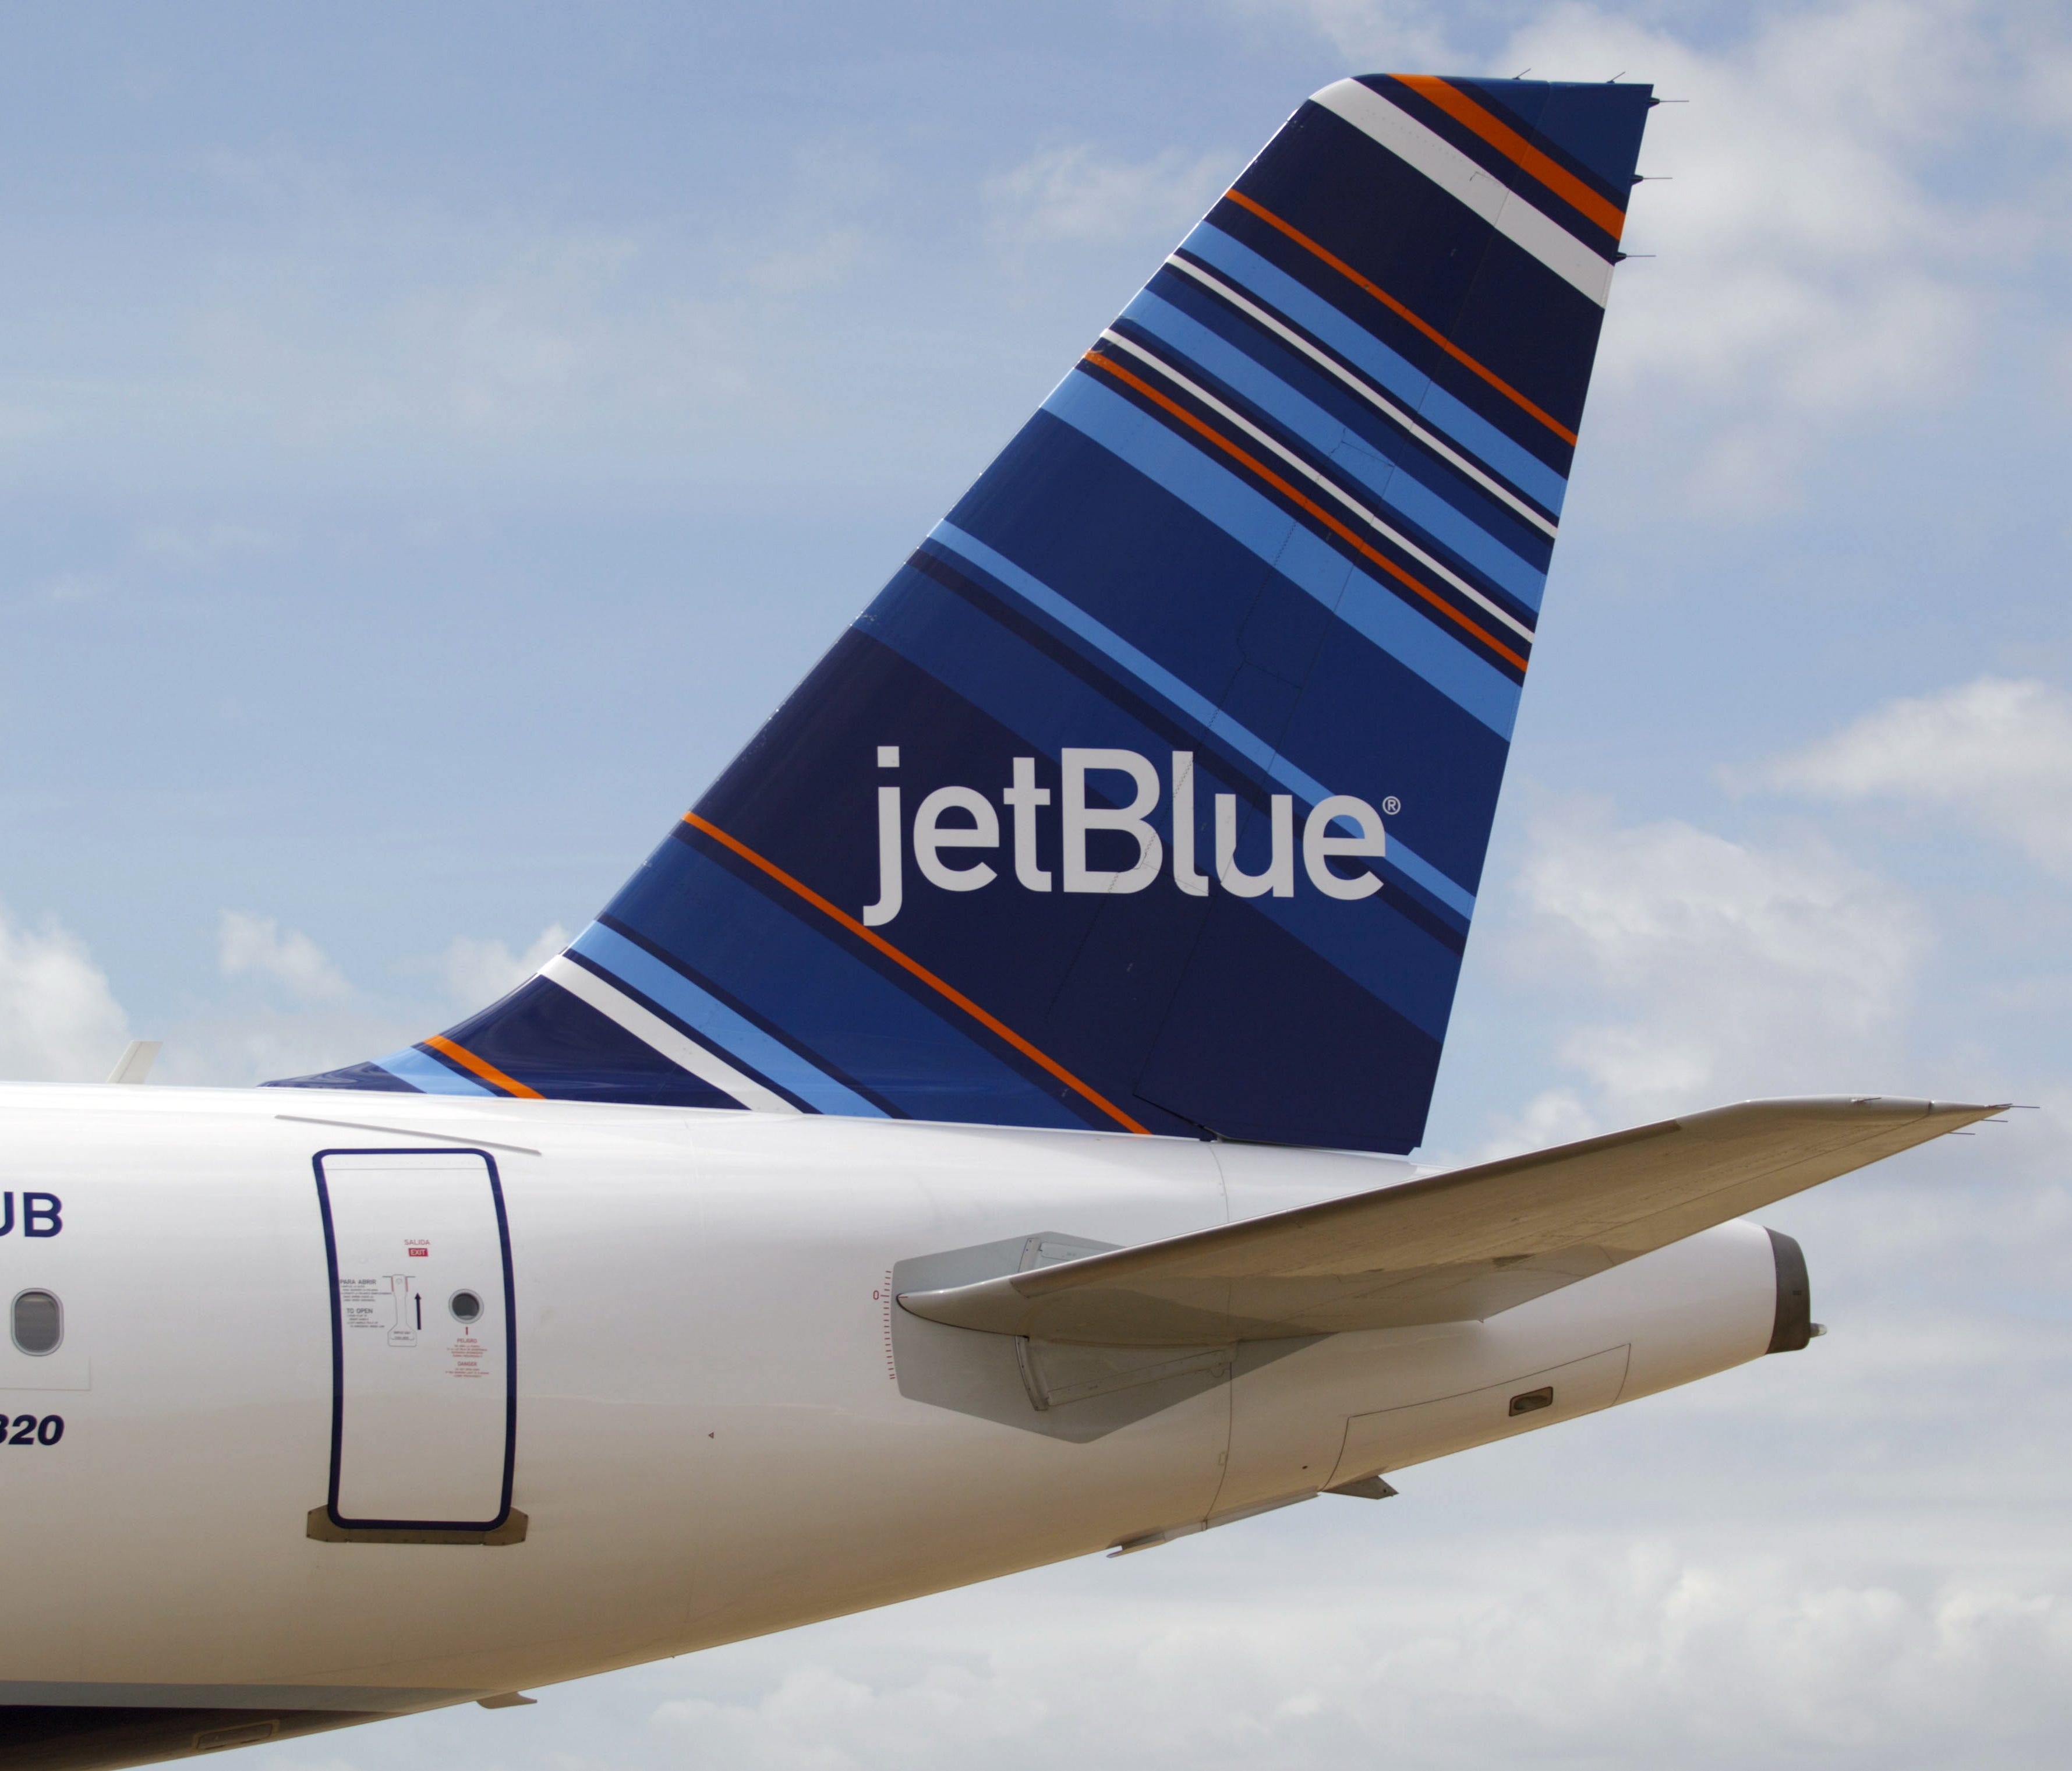 A JetBlue A320 is parked at the Airbus assembly line in Mobile, Ala., on April 8, 2013.